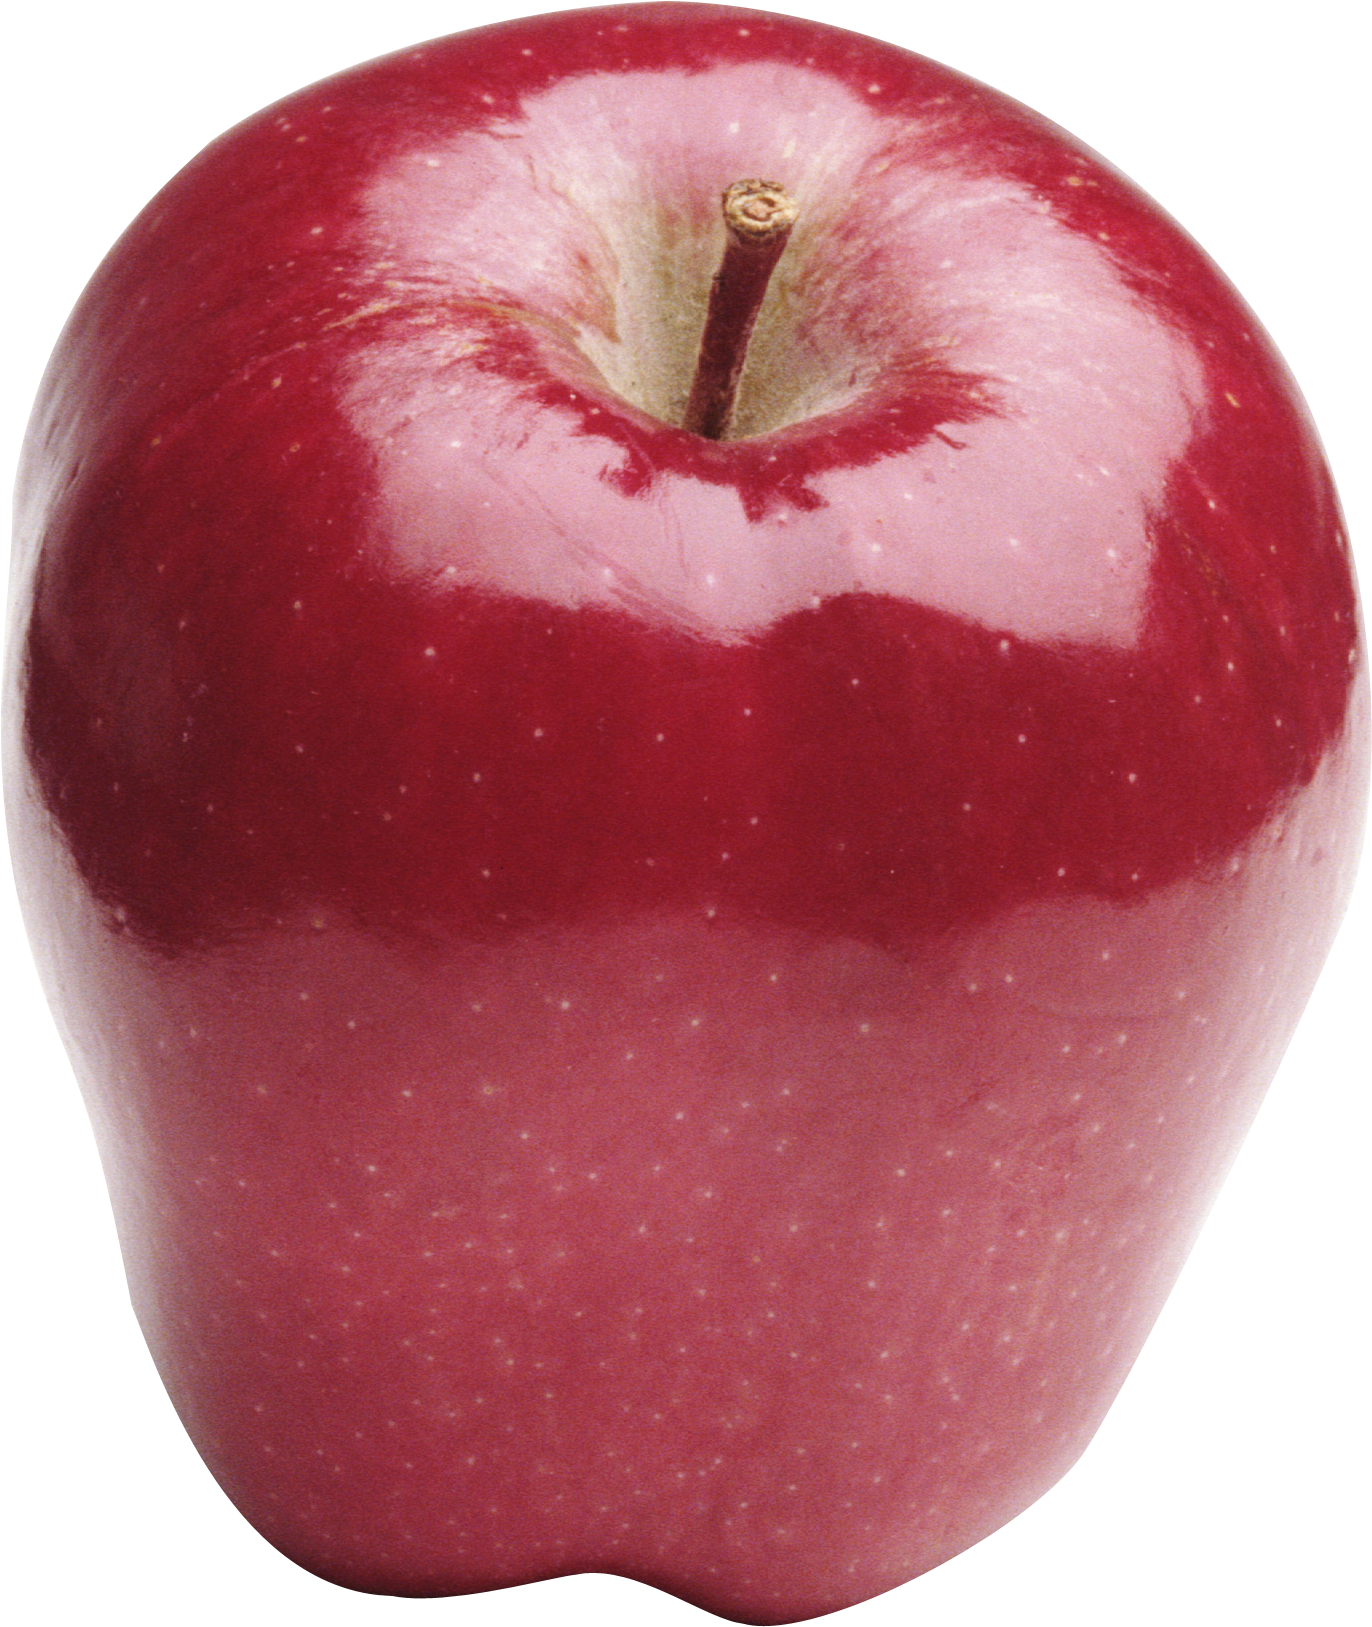 clip black and white stock Apple s png image. Red apples clipart